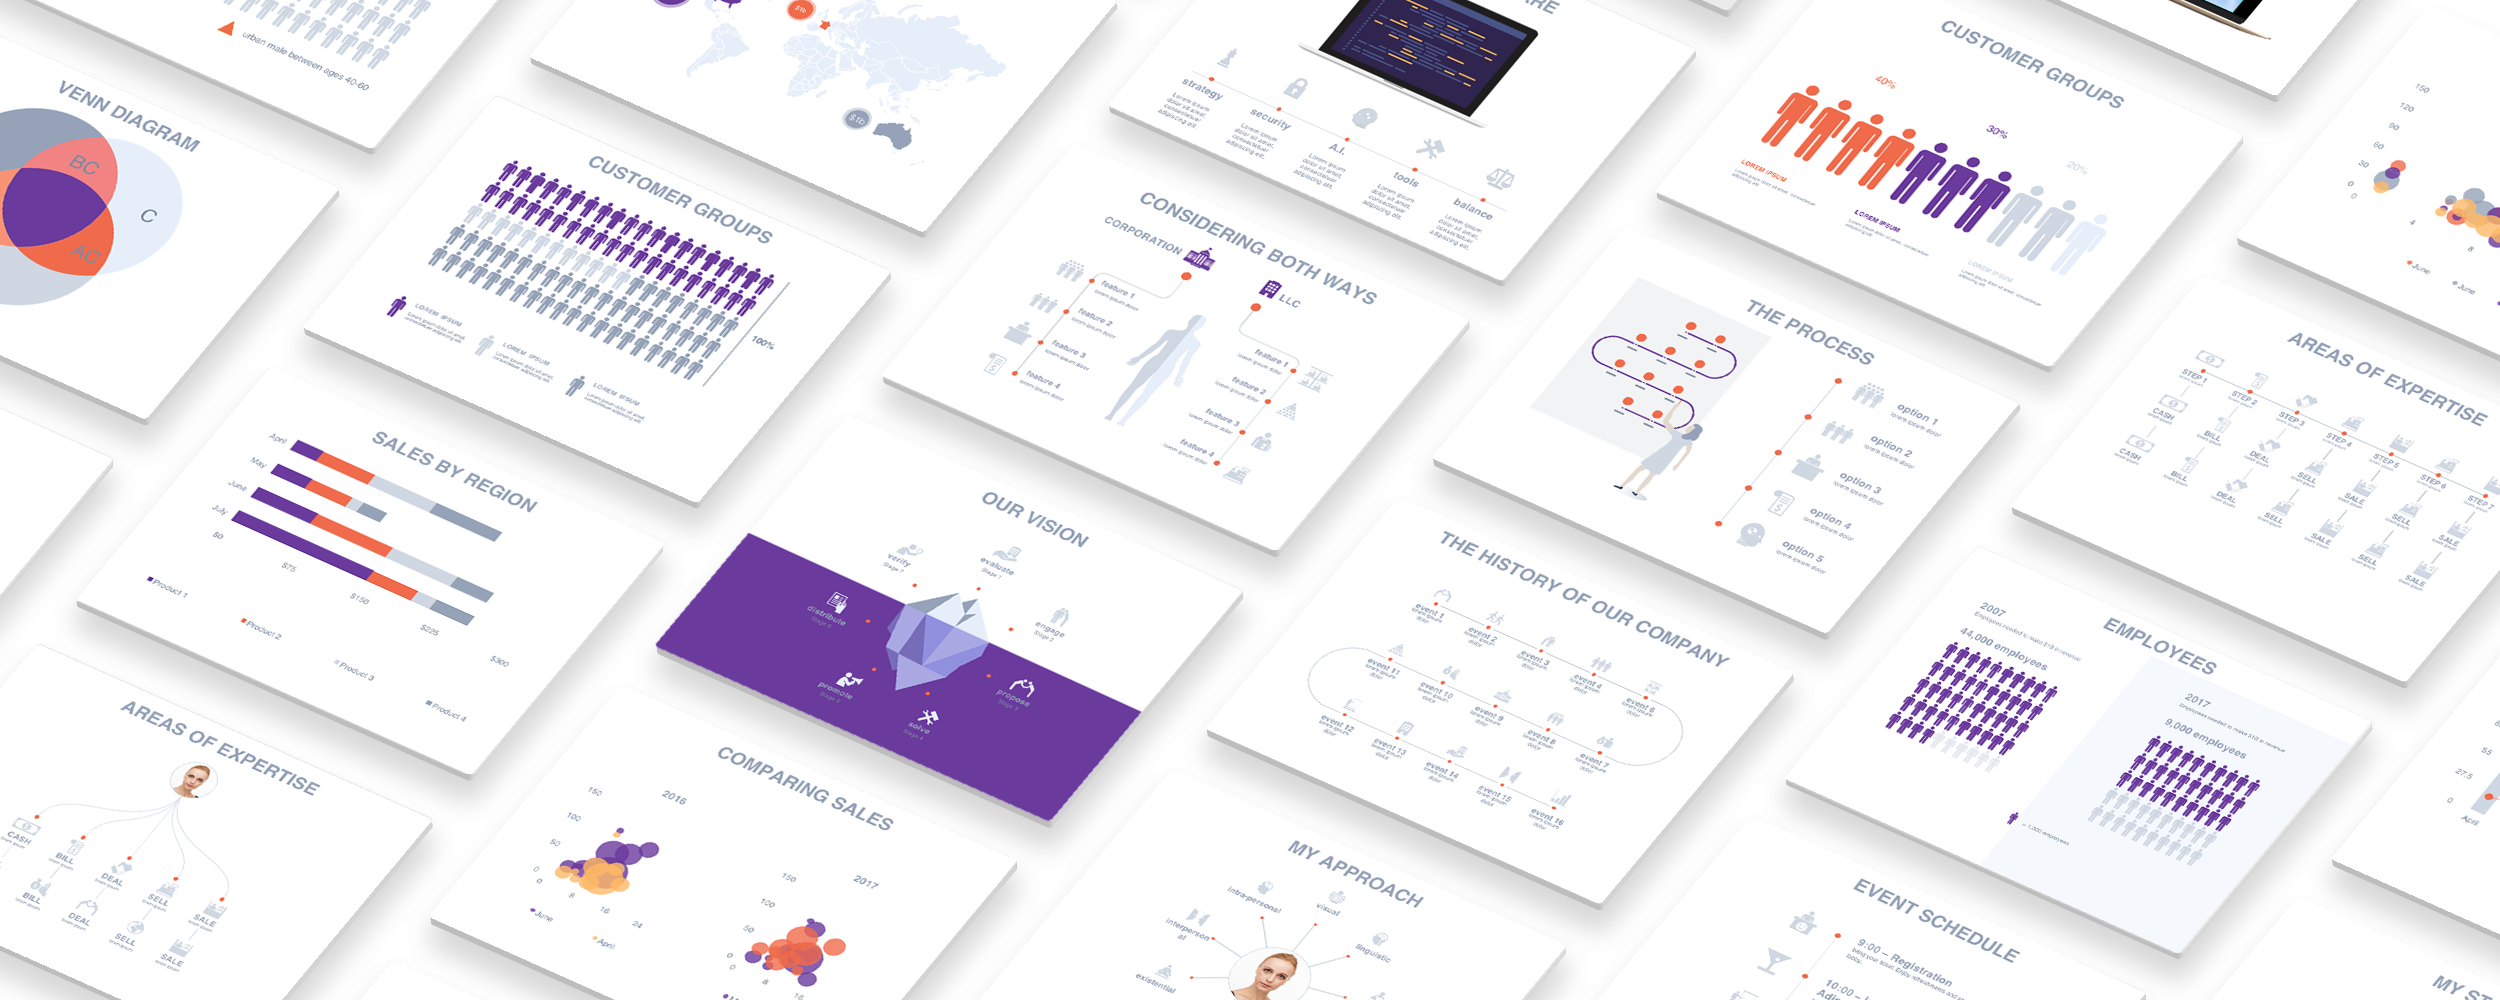 Adioma for Powerpoint - Make beautiful infographic presentations fast